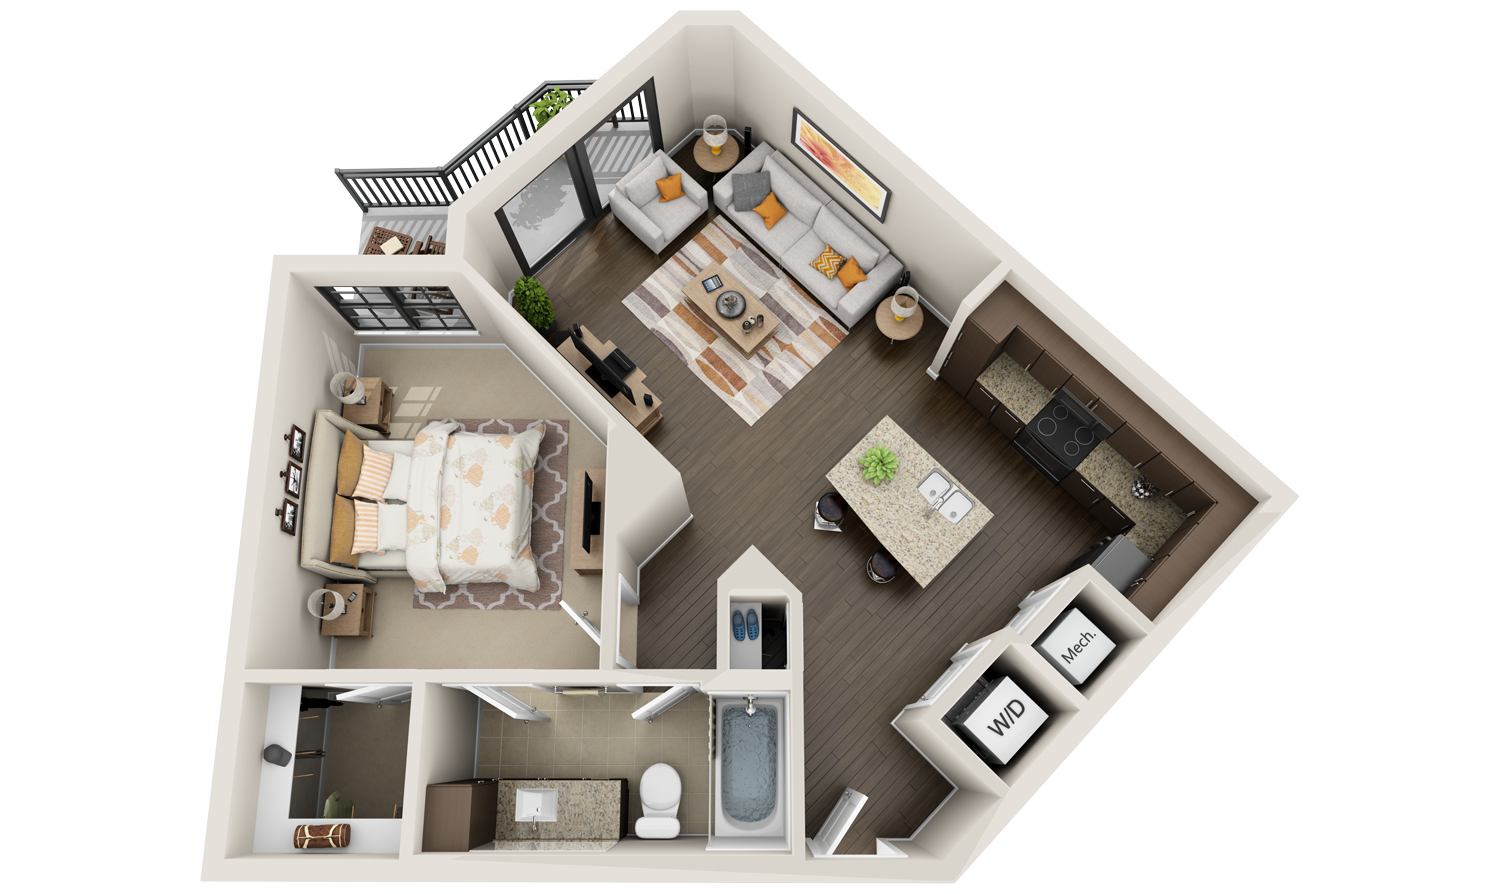 3d floor plans for apartments get your quote now for 3d home floor plan design